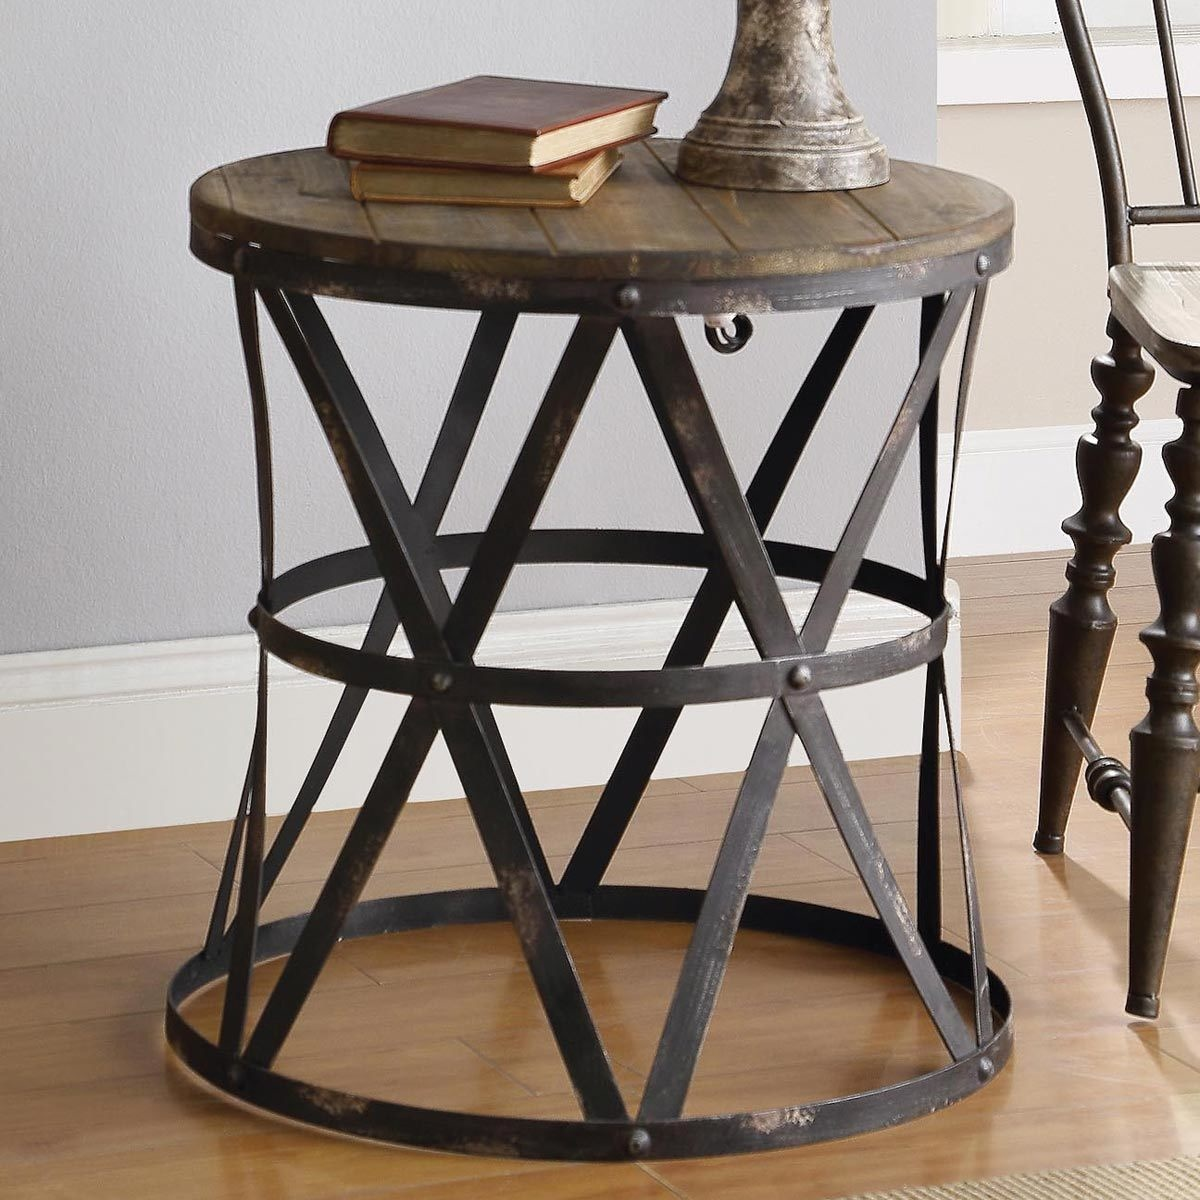 rustic coffee tables and end black forest decor modern side table accent patio chairs metal bookshelf craigslist mid century replica furniture dining room wall ideas acrylic